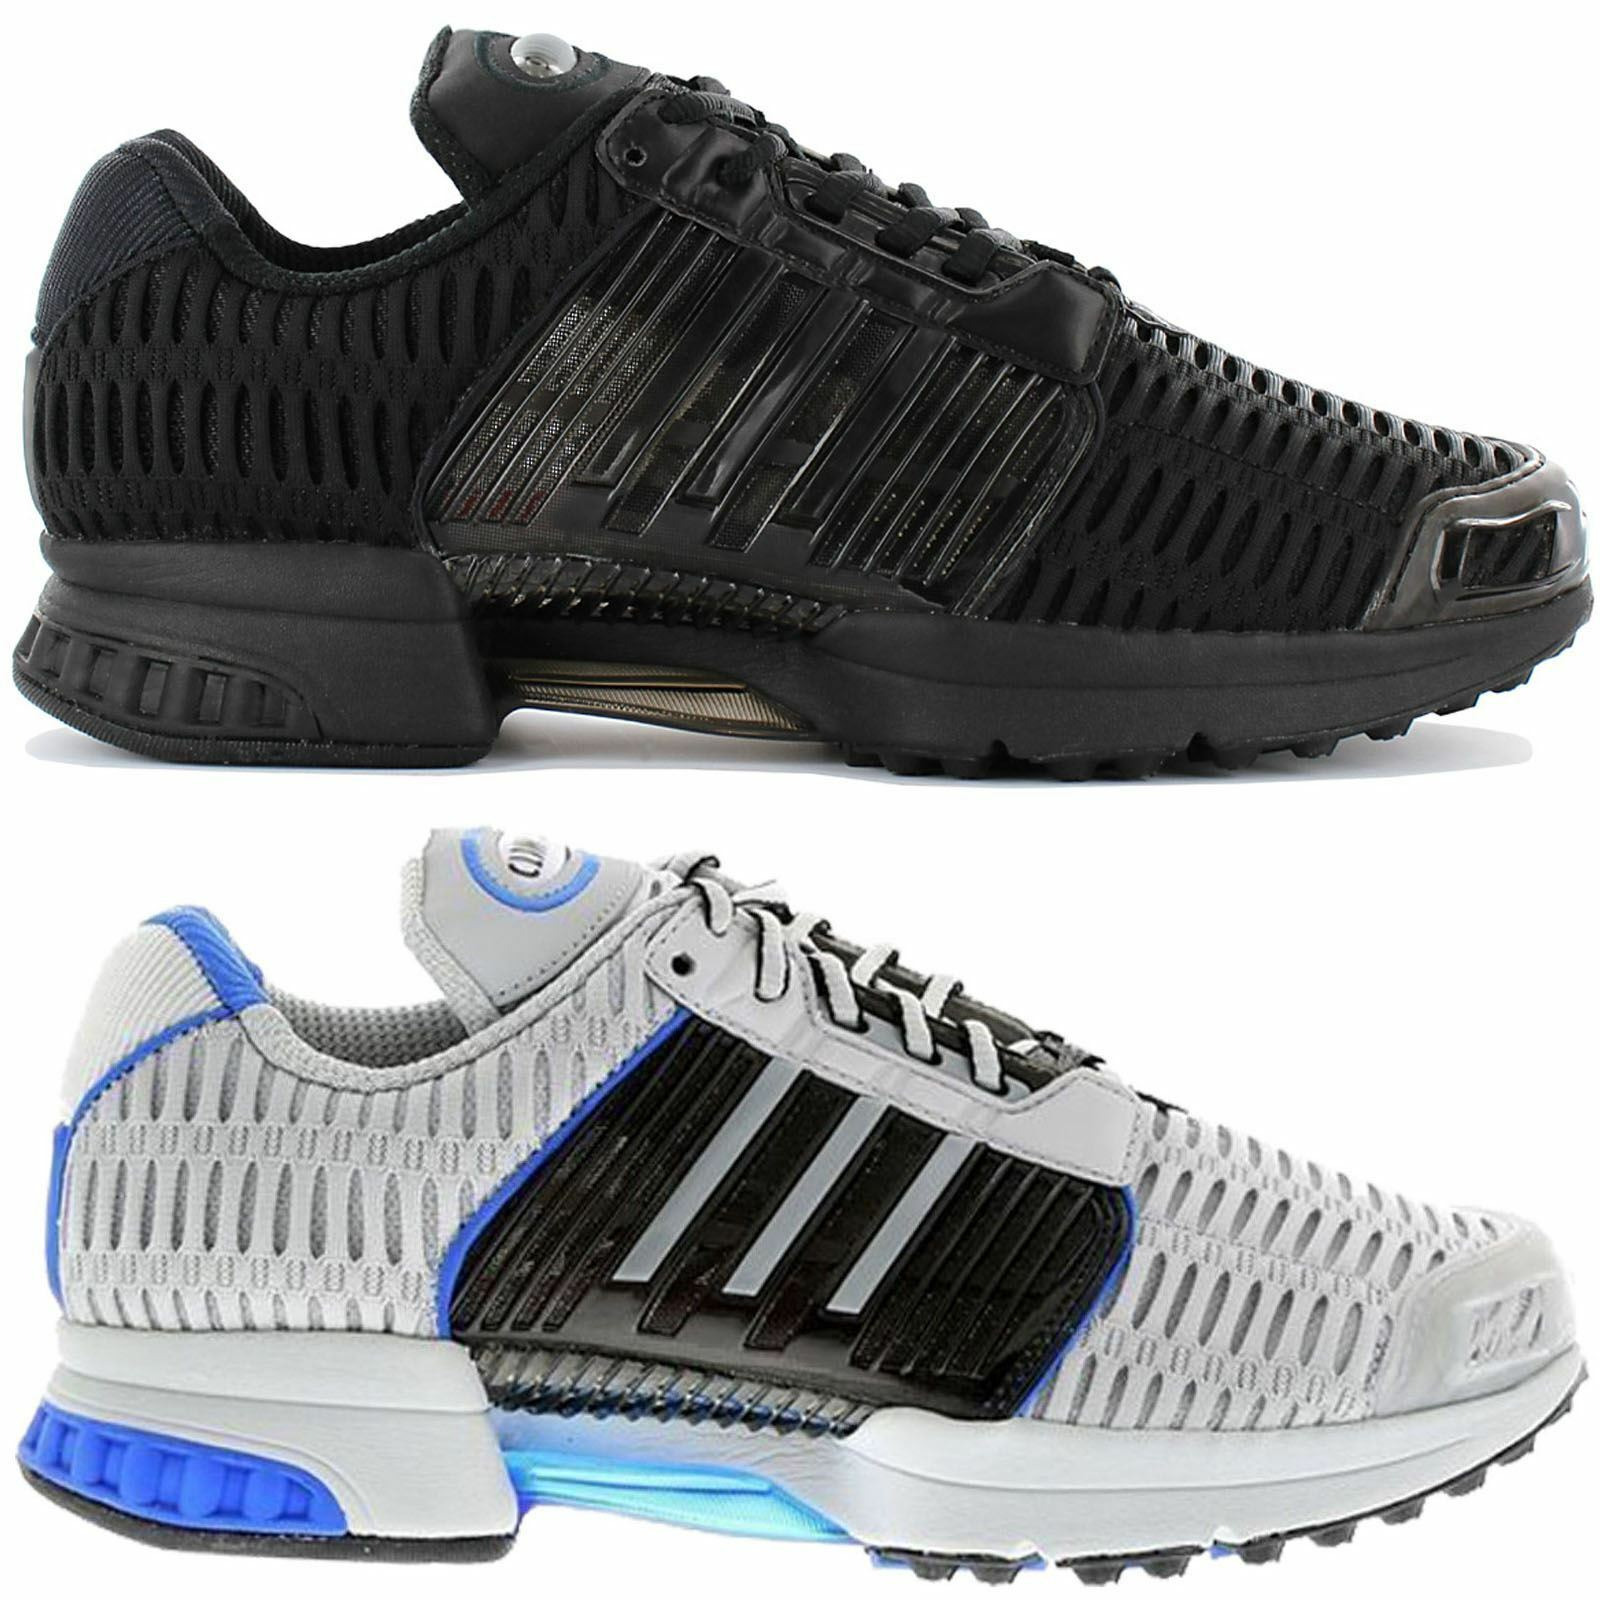 Rrp Baskets To 1 99 Seulehommes T Homme Adidas ~ Climacool 13 tBqXTX